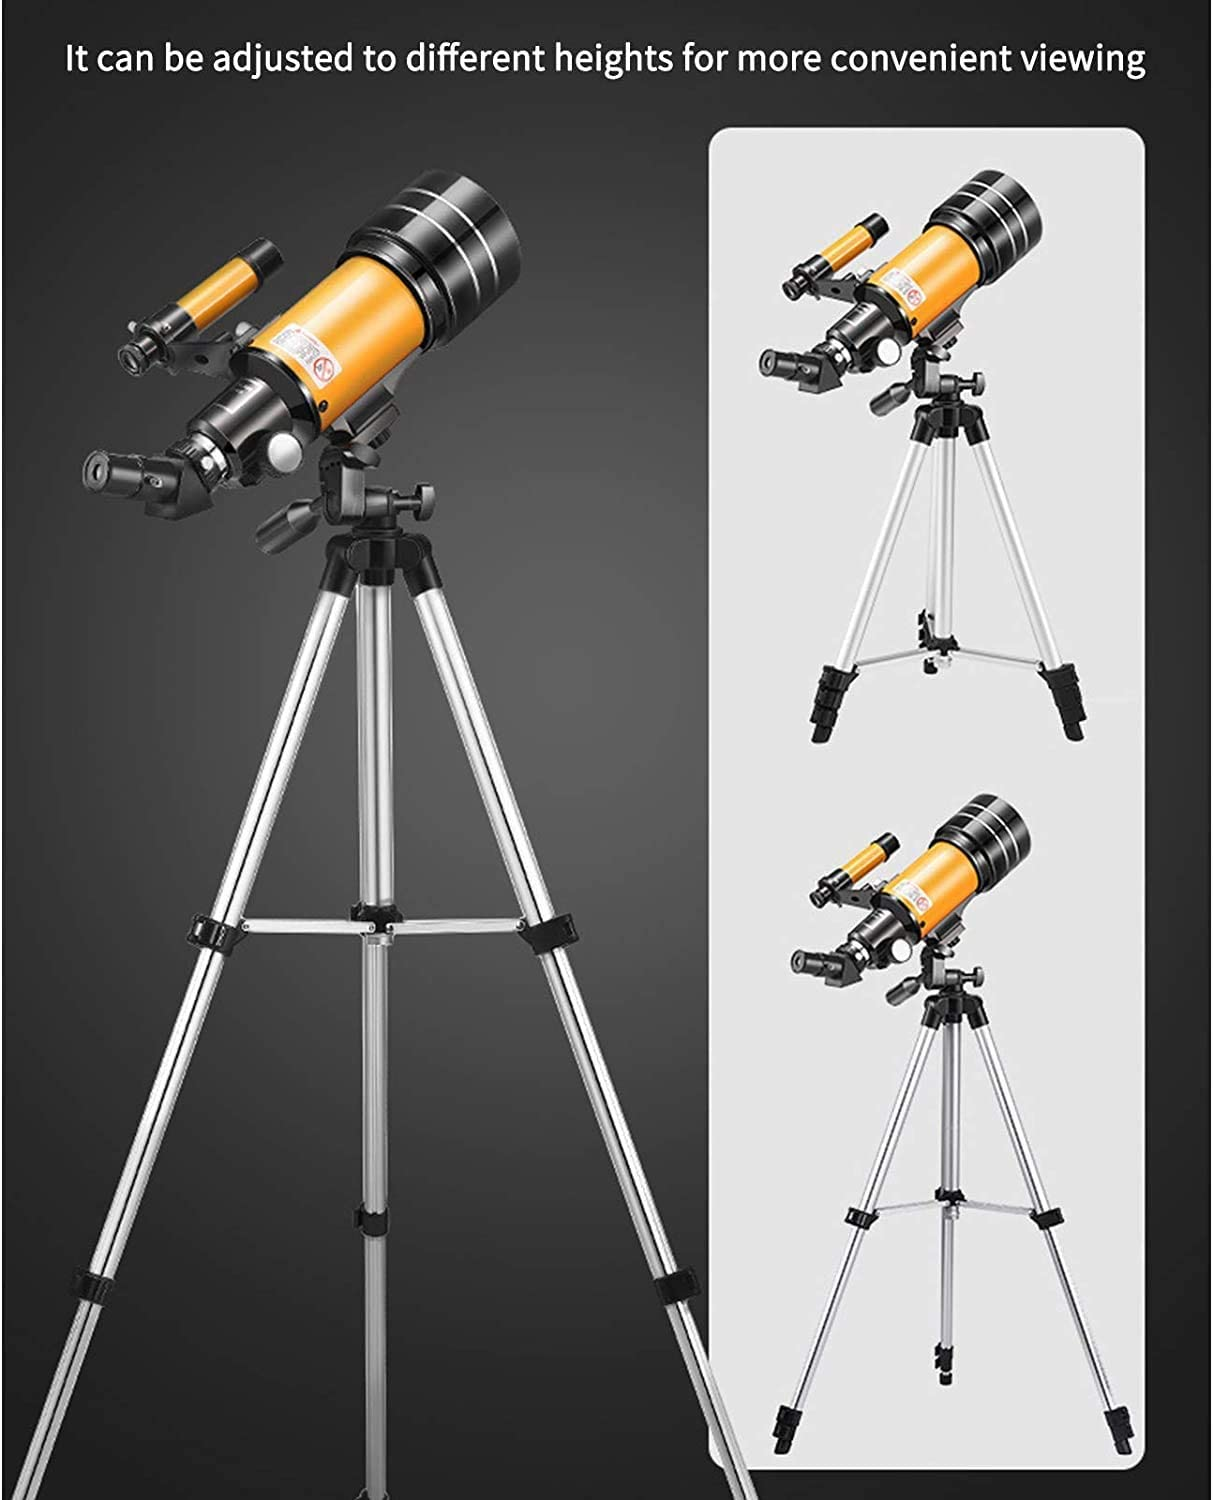 Telescopes for Adults,Andees 70mm Aperture Professional Telescope with Tripod,Astronomical Refracting Telescope Gifts for Astronomy Beginners Adjustable Travel Telescopes,Phone Adapter